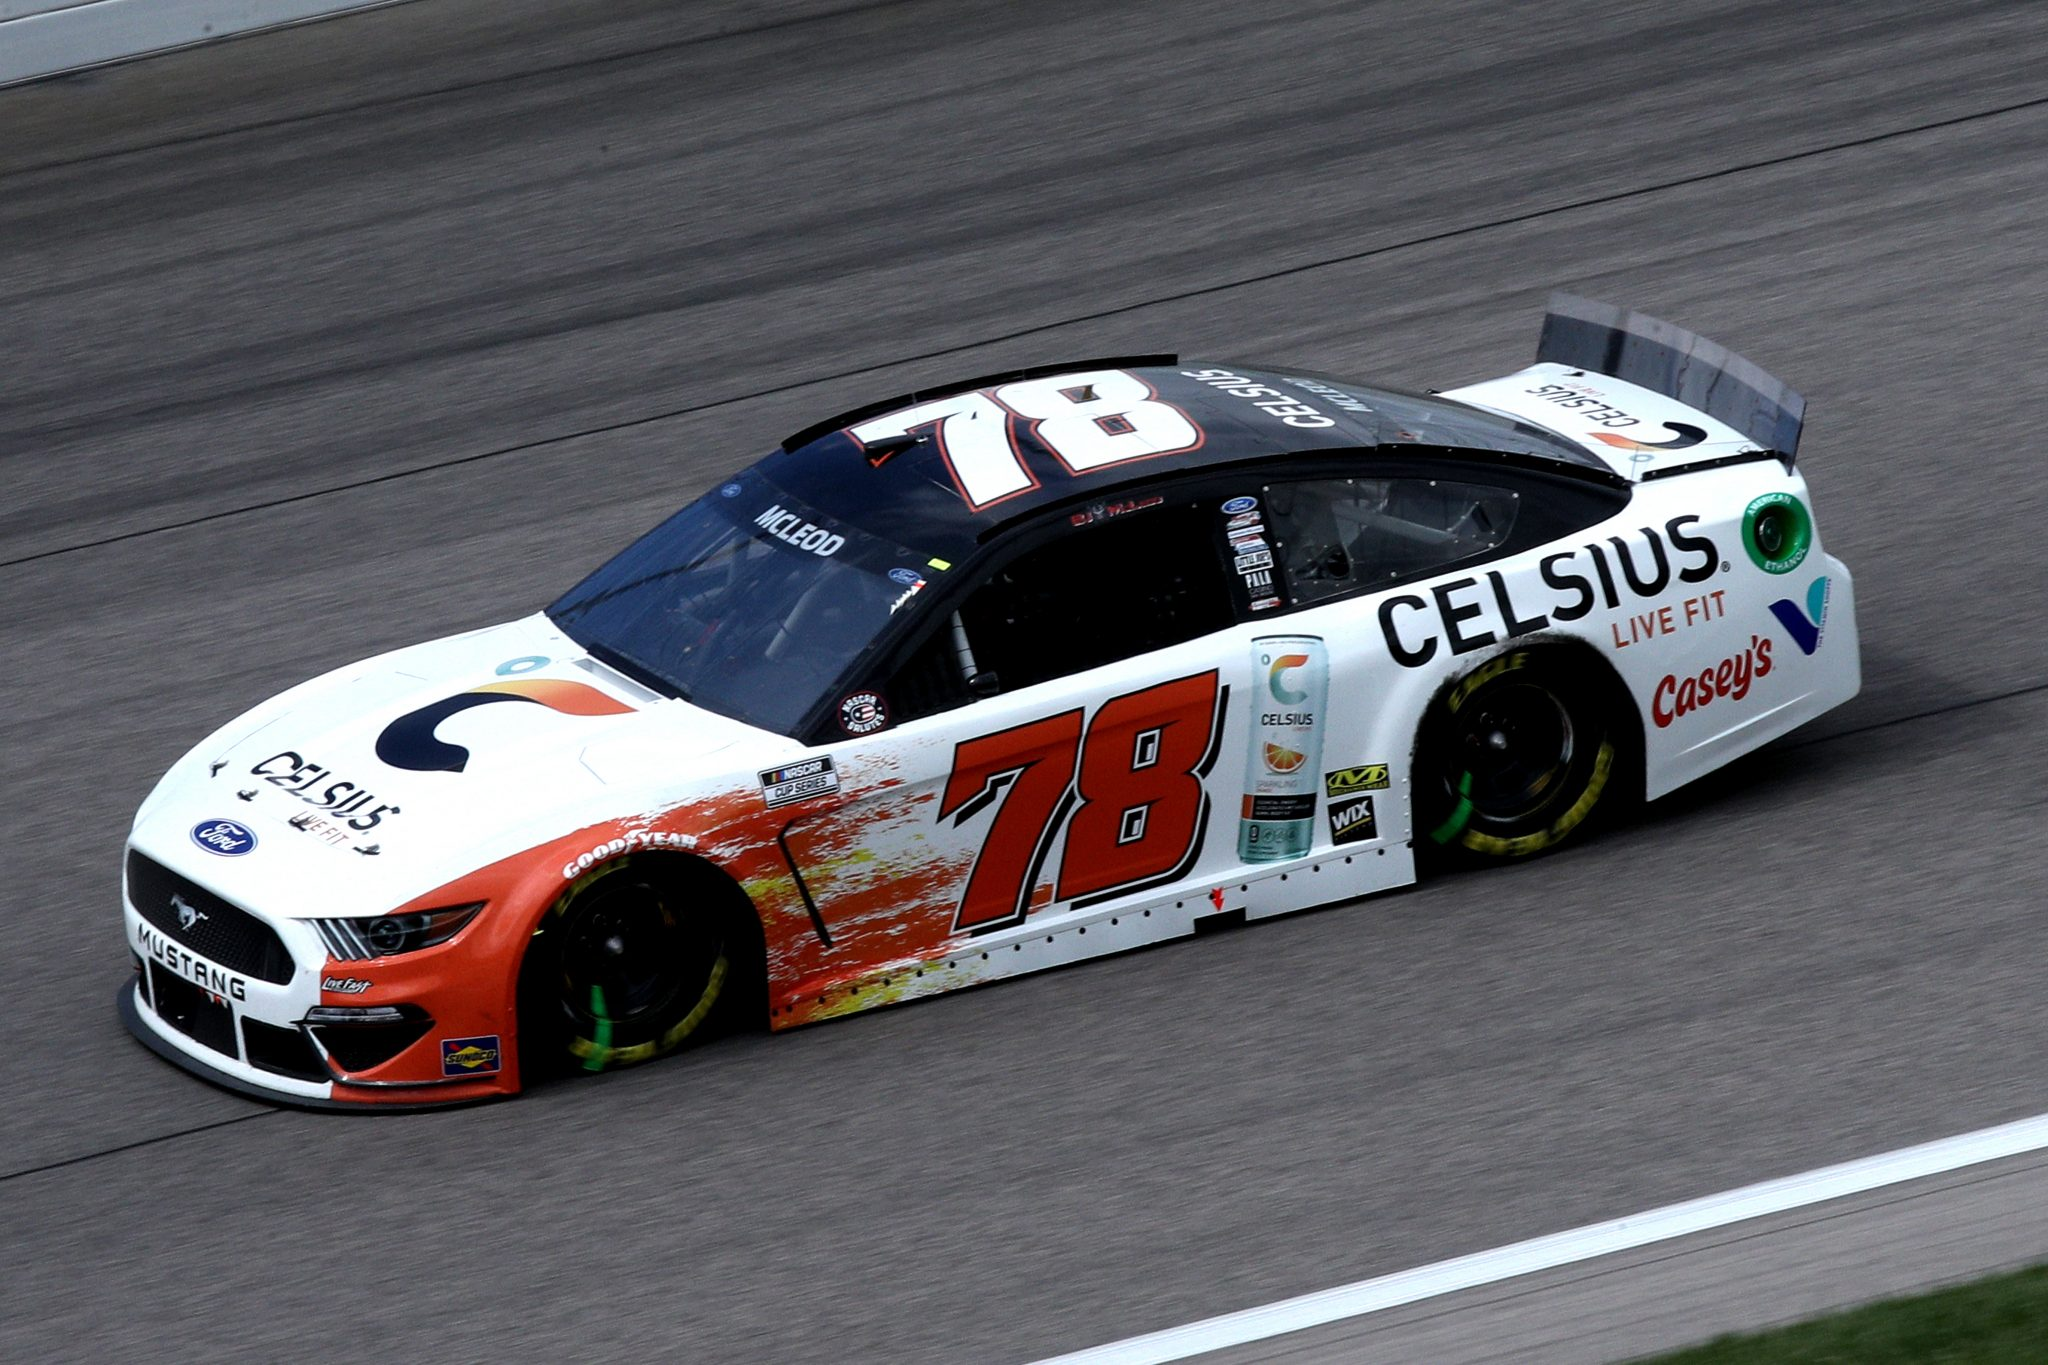 KANSAS CITY, KANSAS - MAY 02: BJ McLeod, driver of the #78 Celsius Ford, drives during the NASCAR Cup Series Buschy McBusch Race 400 at Kansas Speedway on May 02, 2021 in Kansas City, Kansas. (Photo by Sean Gardner/Getty Images) | Getty Images